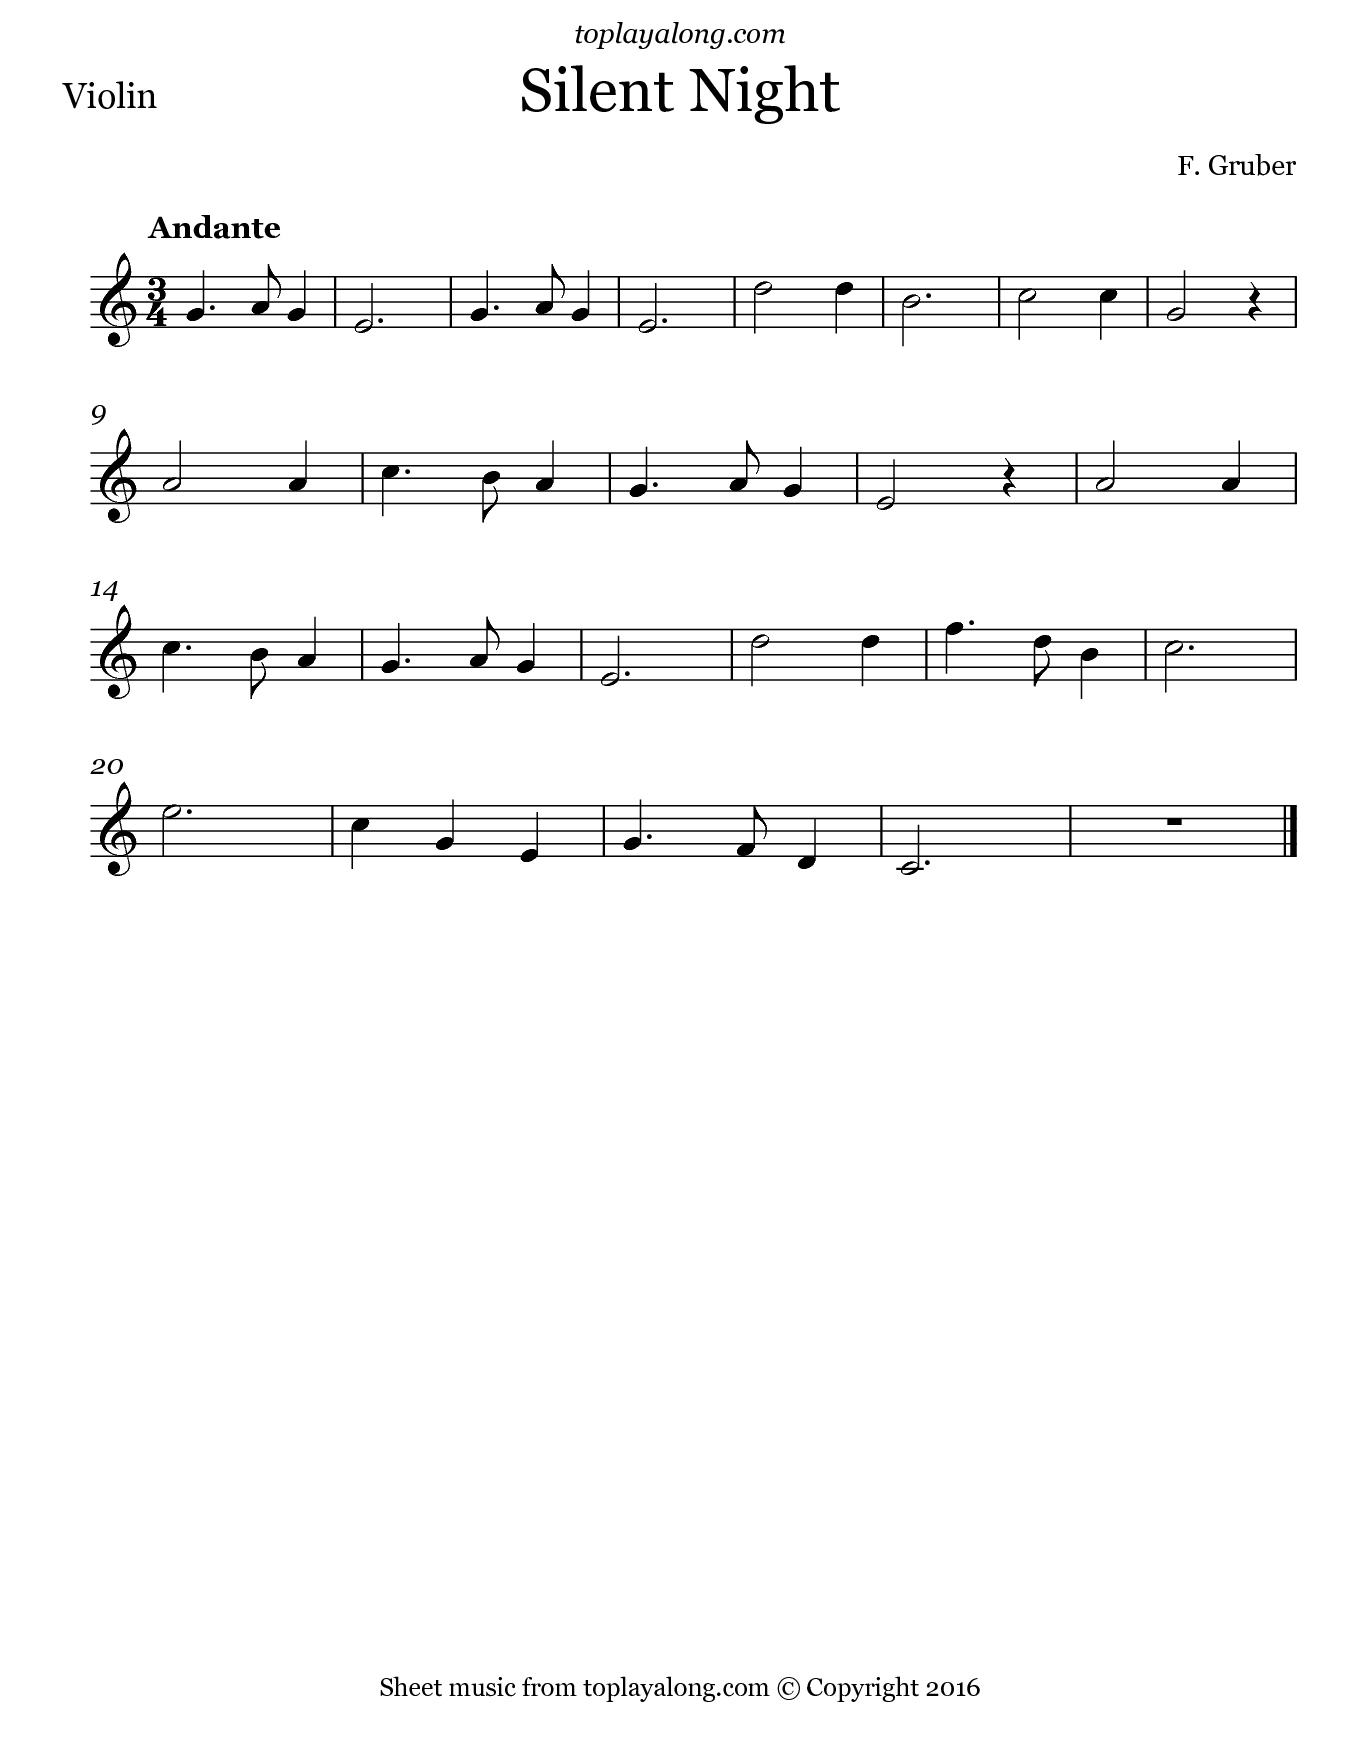 Silent Night by Gruber. Sheet music for Violin, page 1.